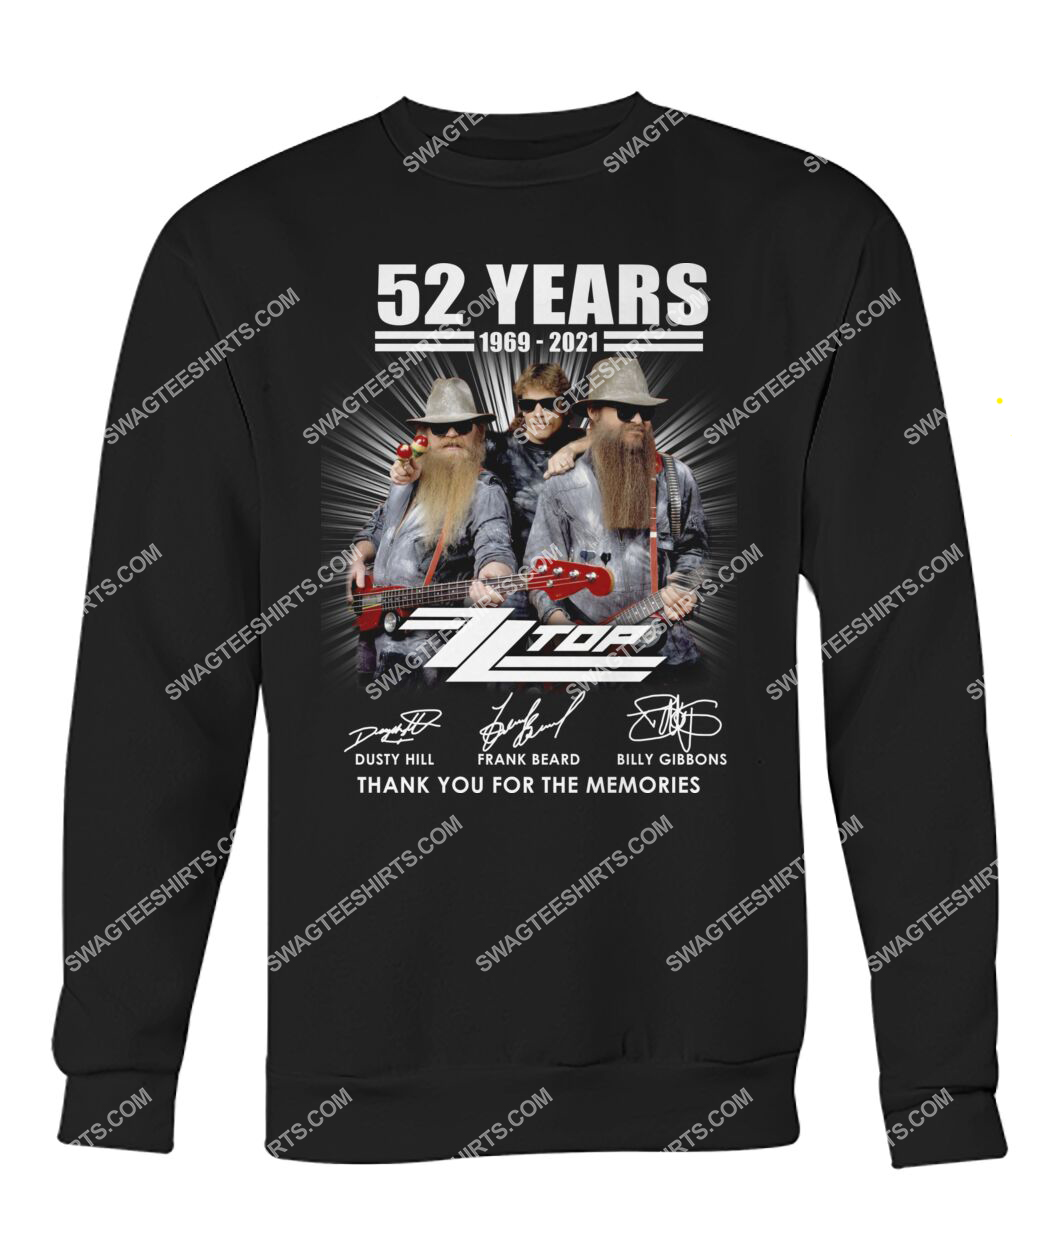 vintage zz top 52 years thank you for memories signature sweatshirt 1